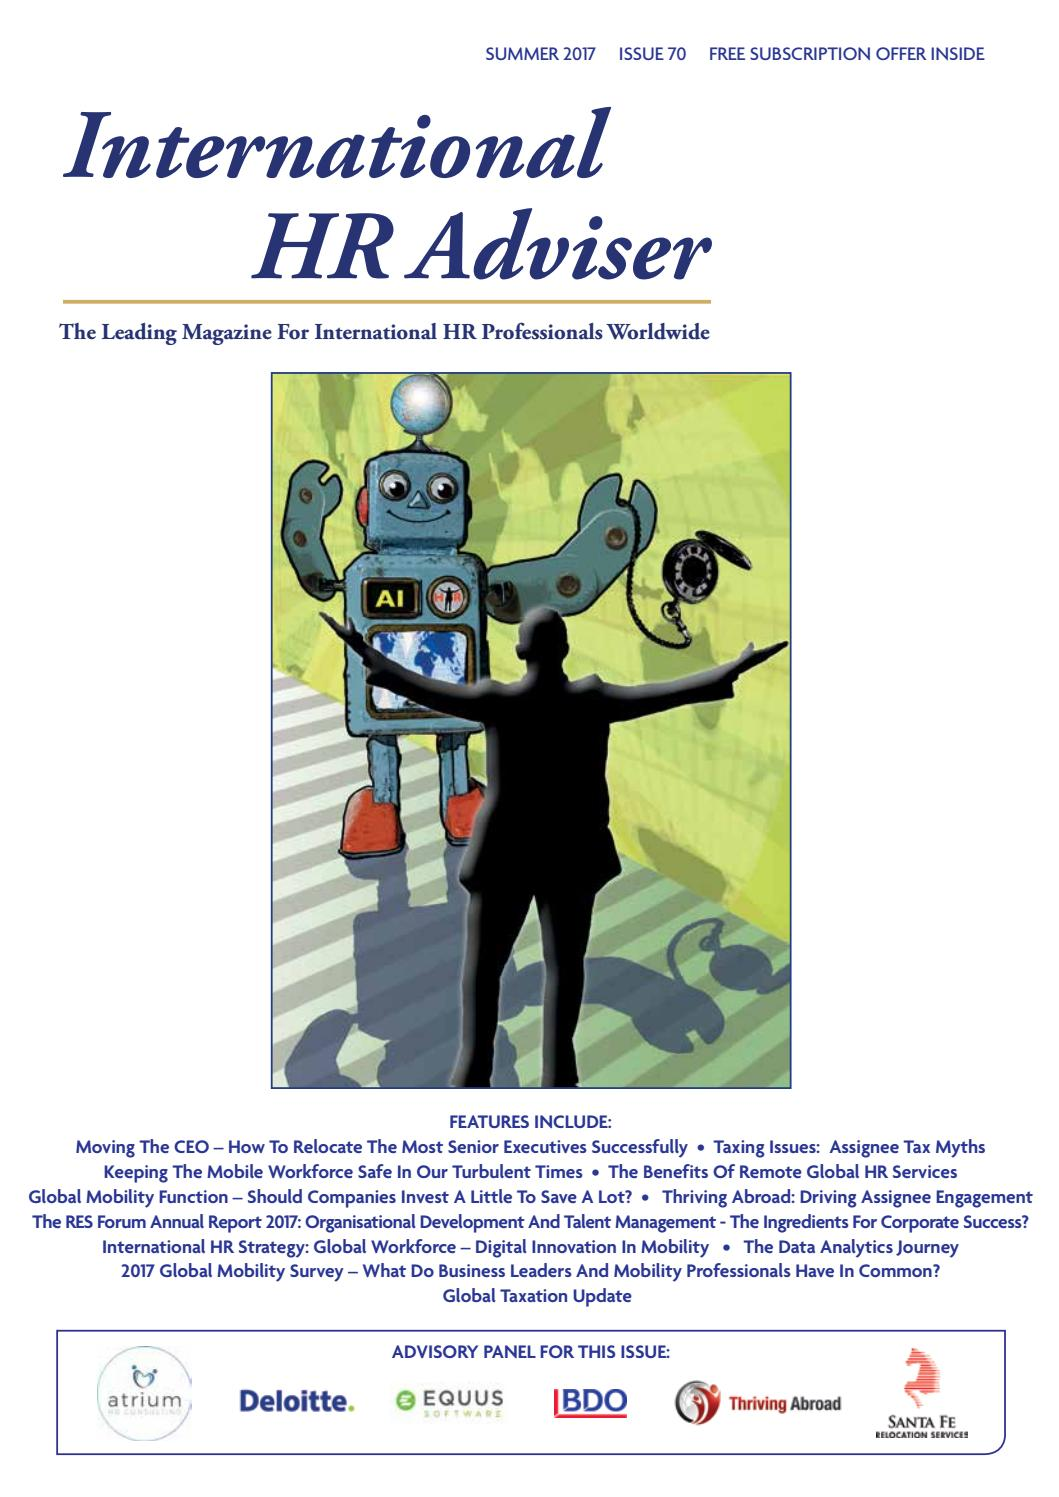 International HR Adviser Summer 2017 by International HR